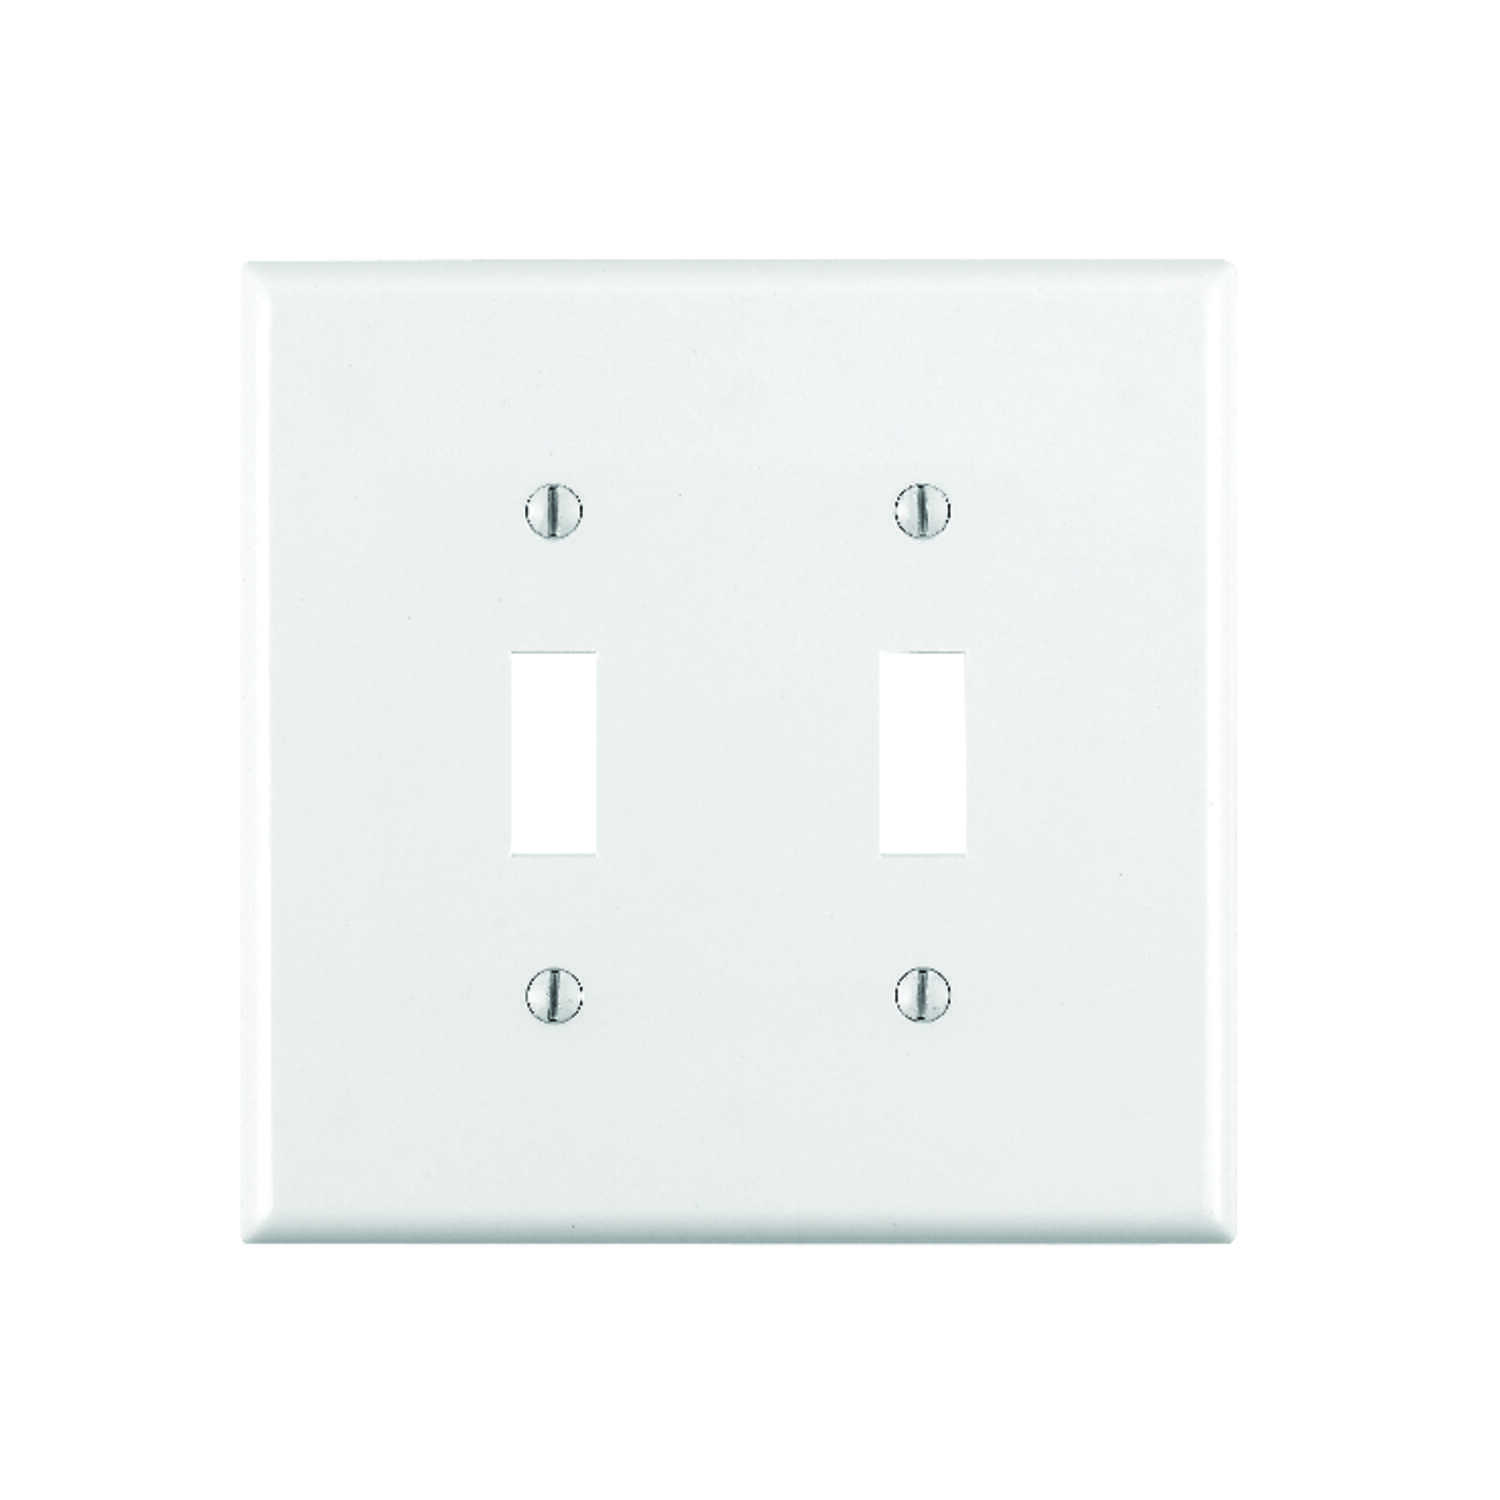 Leviton  White  2 gang Toggle  Wall Plate  1 pk Plastic